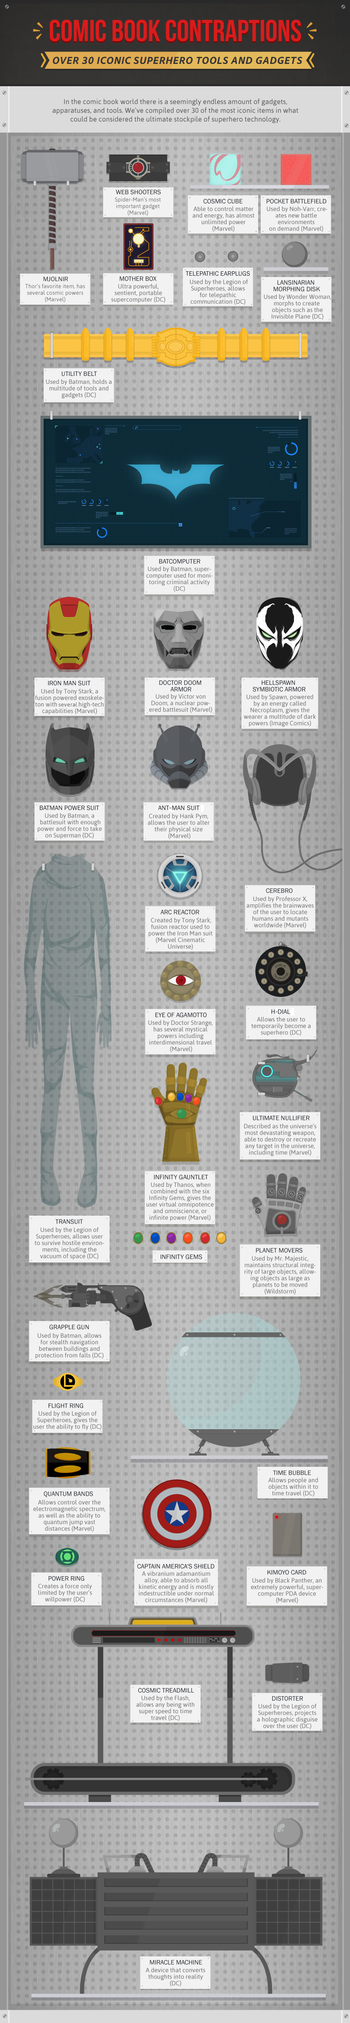 Watch The Evolution of Iron Man Armor, Plus 30 Iconic Comic Book Tools